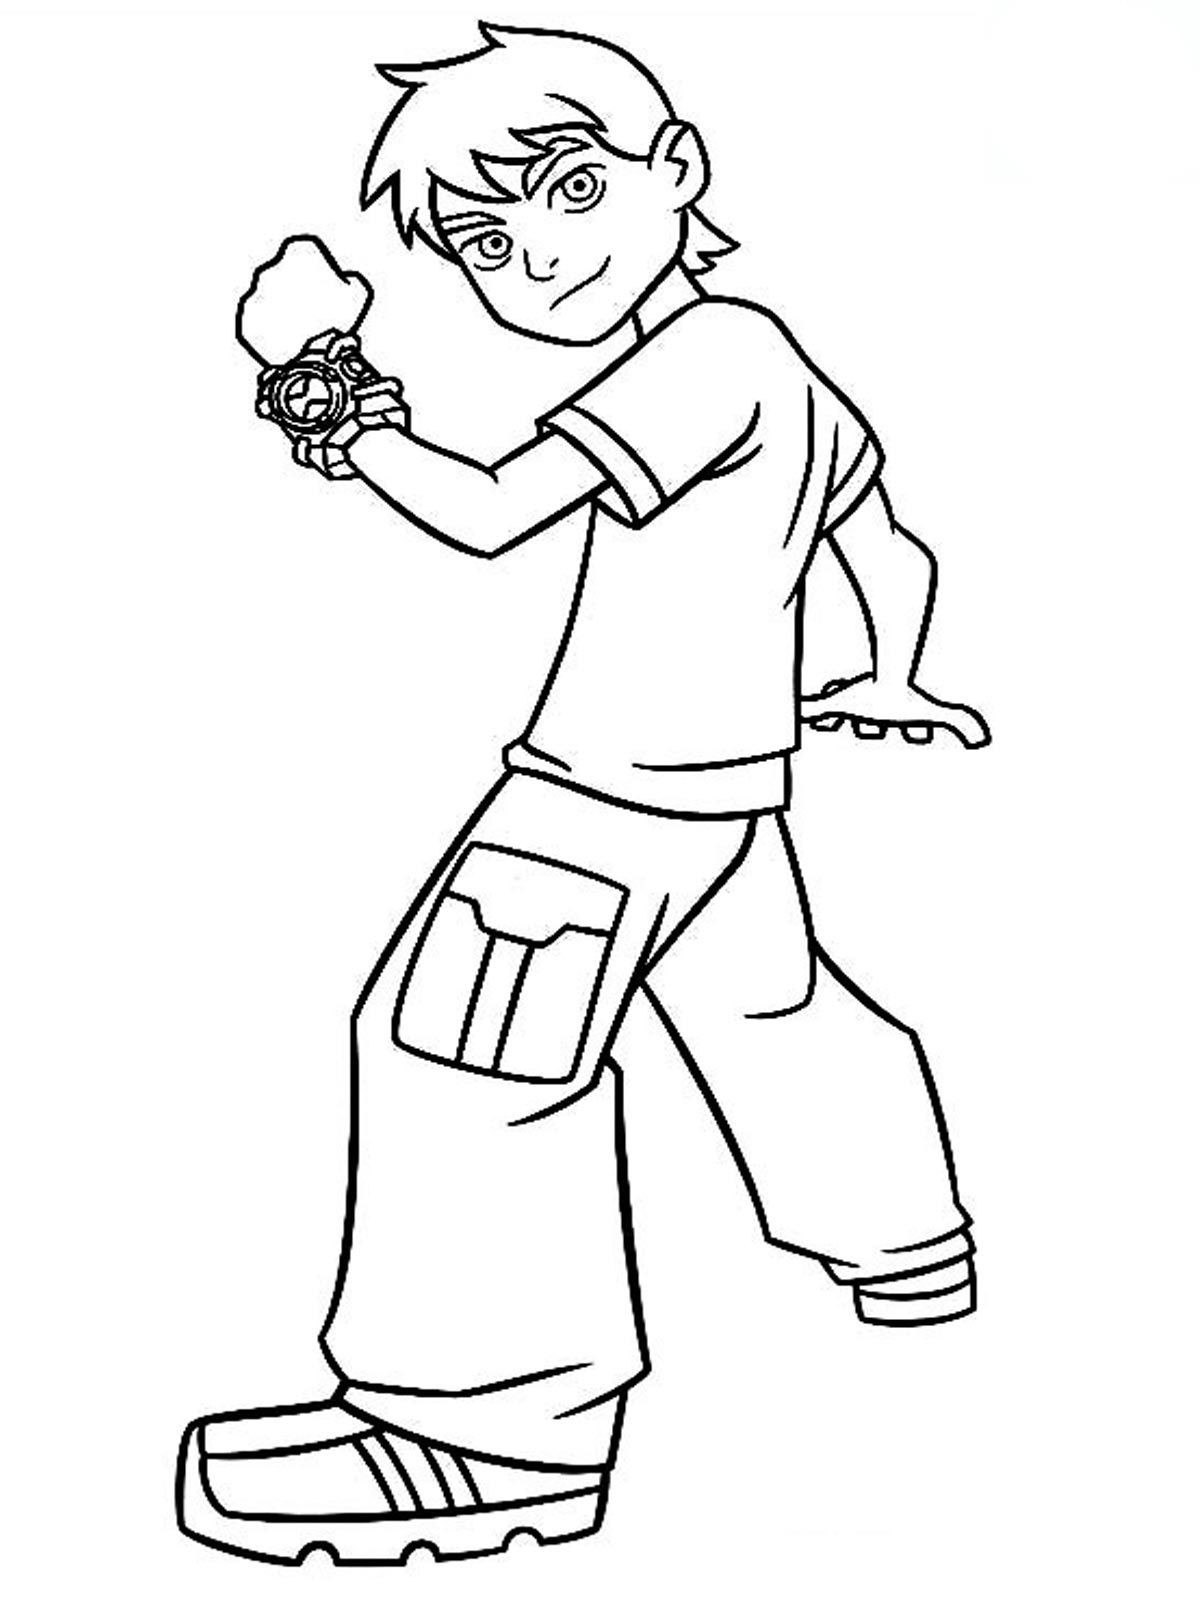 ben 10 coloring page easy ben 10 rath coloring pages alien force rath colouring page ben 10 coloring